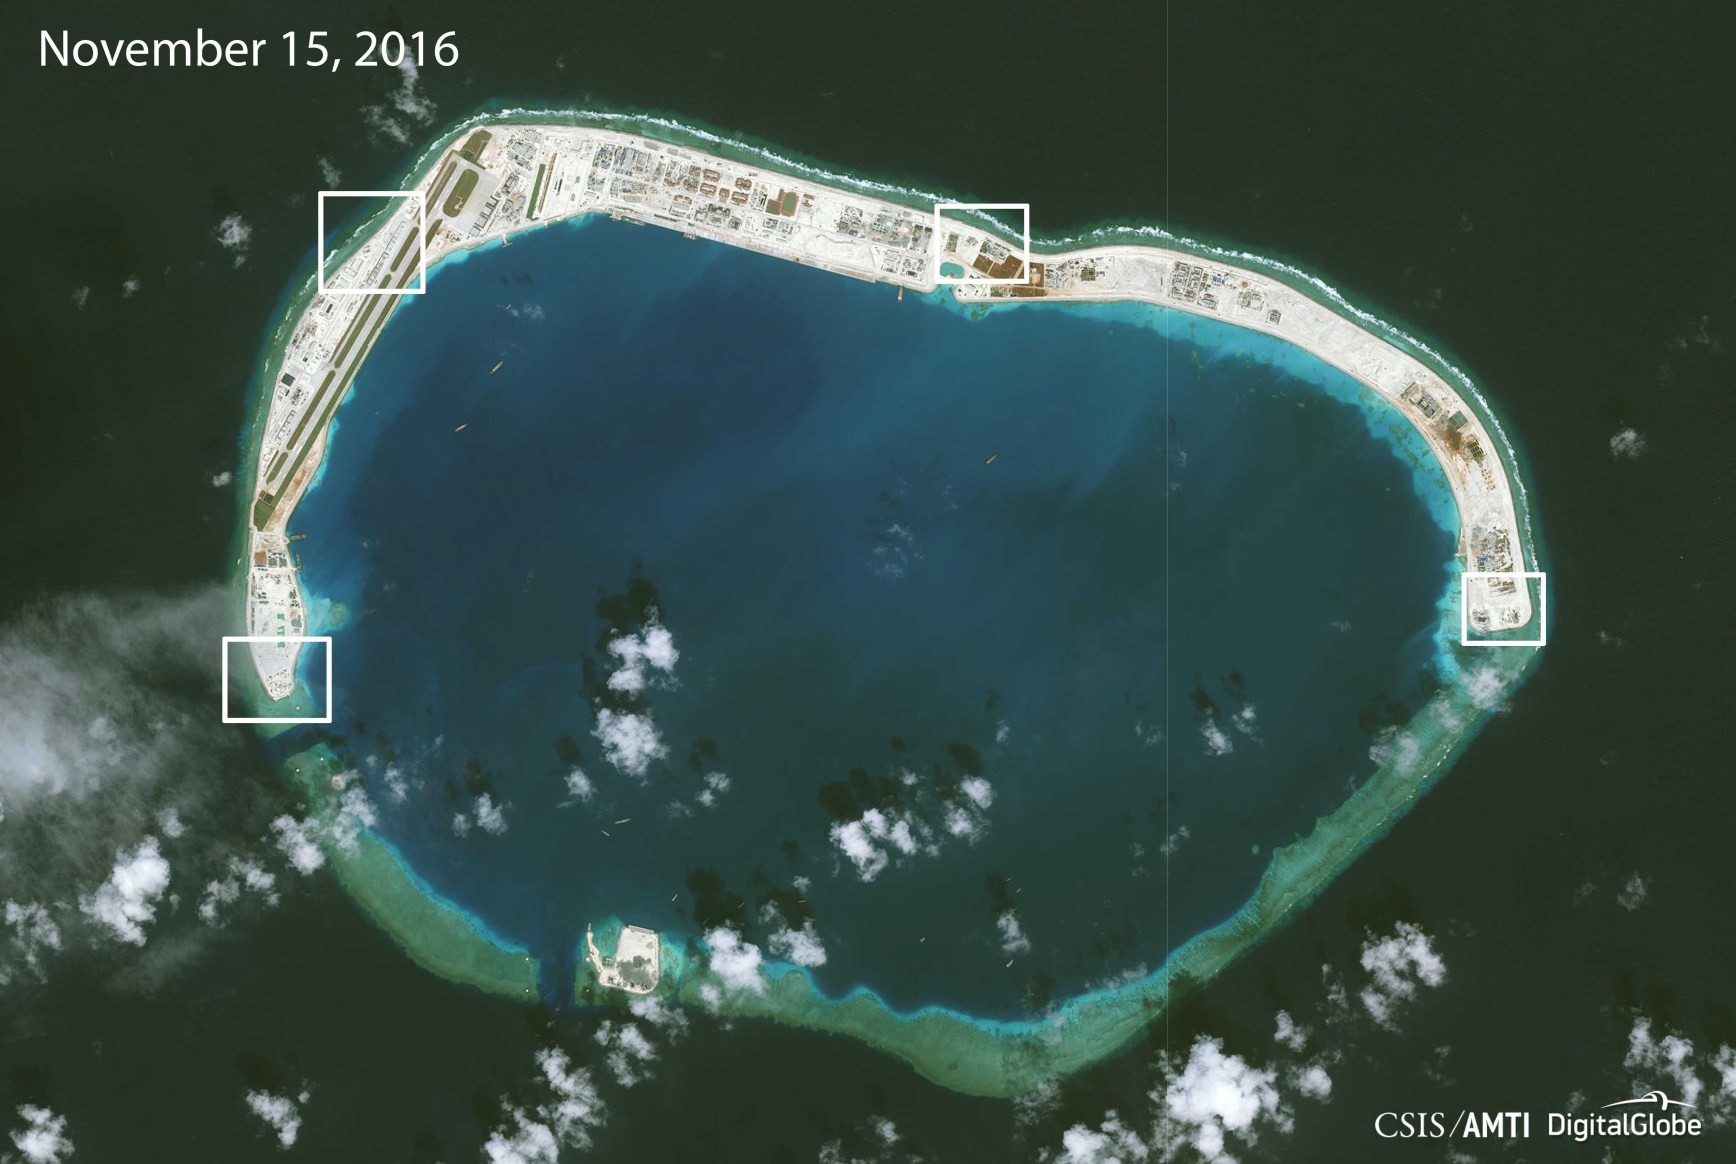 Structures seen on a satellite image of Mischief Reef on November 15, 2016, released December 13, 2016. Image courtesy CSIS Asia Maritime Transparency Initiative/DigitalGlobe/Handout